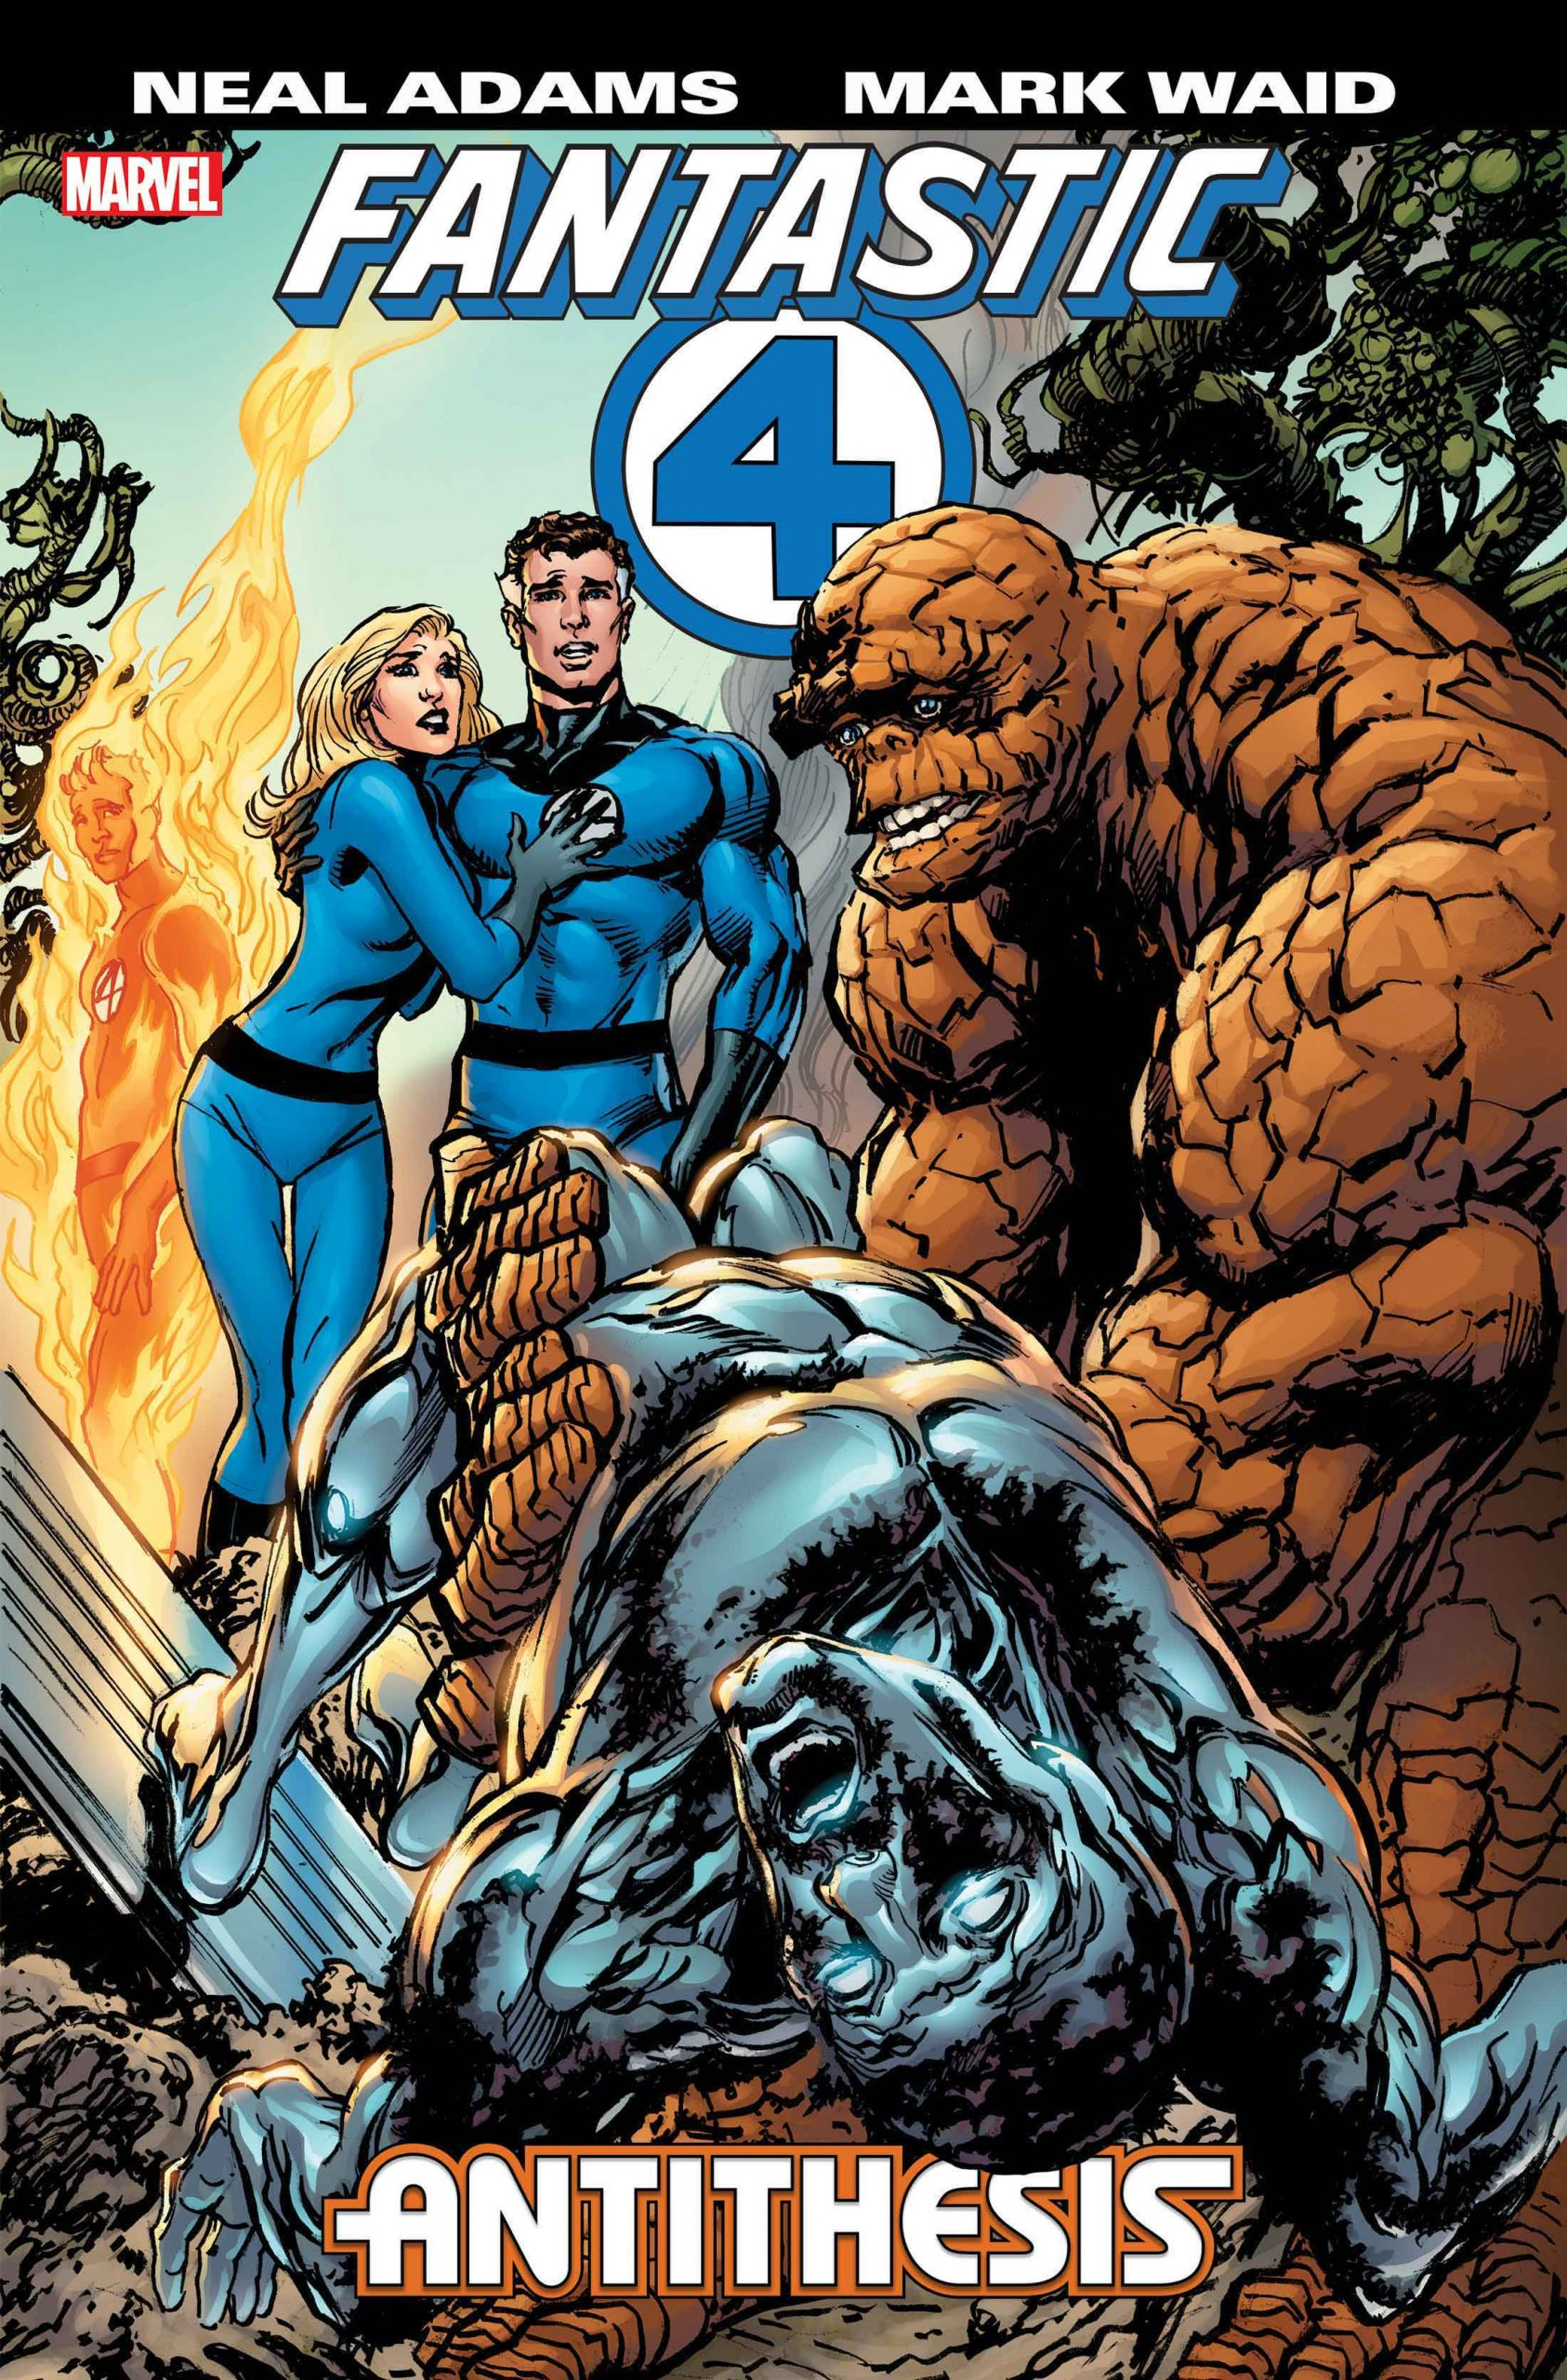 Marvel Comics announces Neal Adams and Mark Waid collab on 'Fantastic Four: Antithesis'